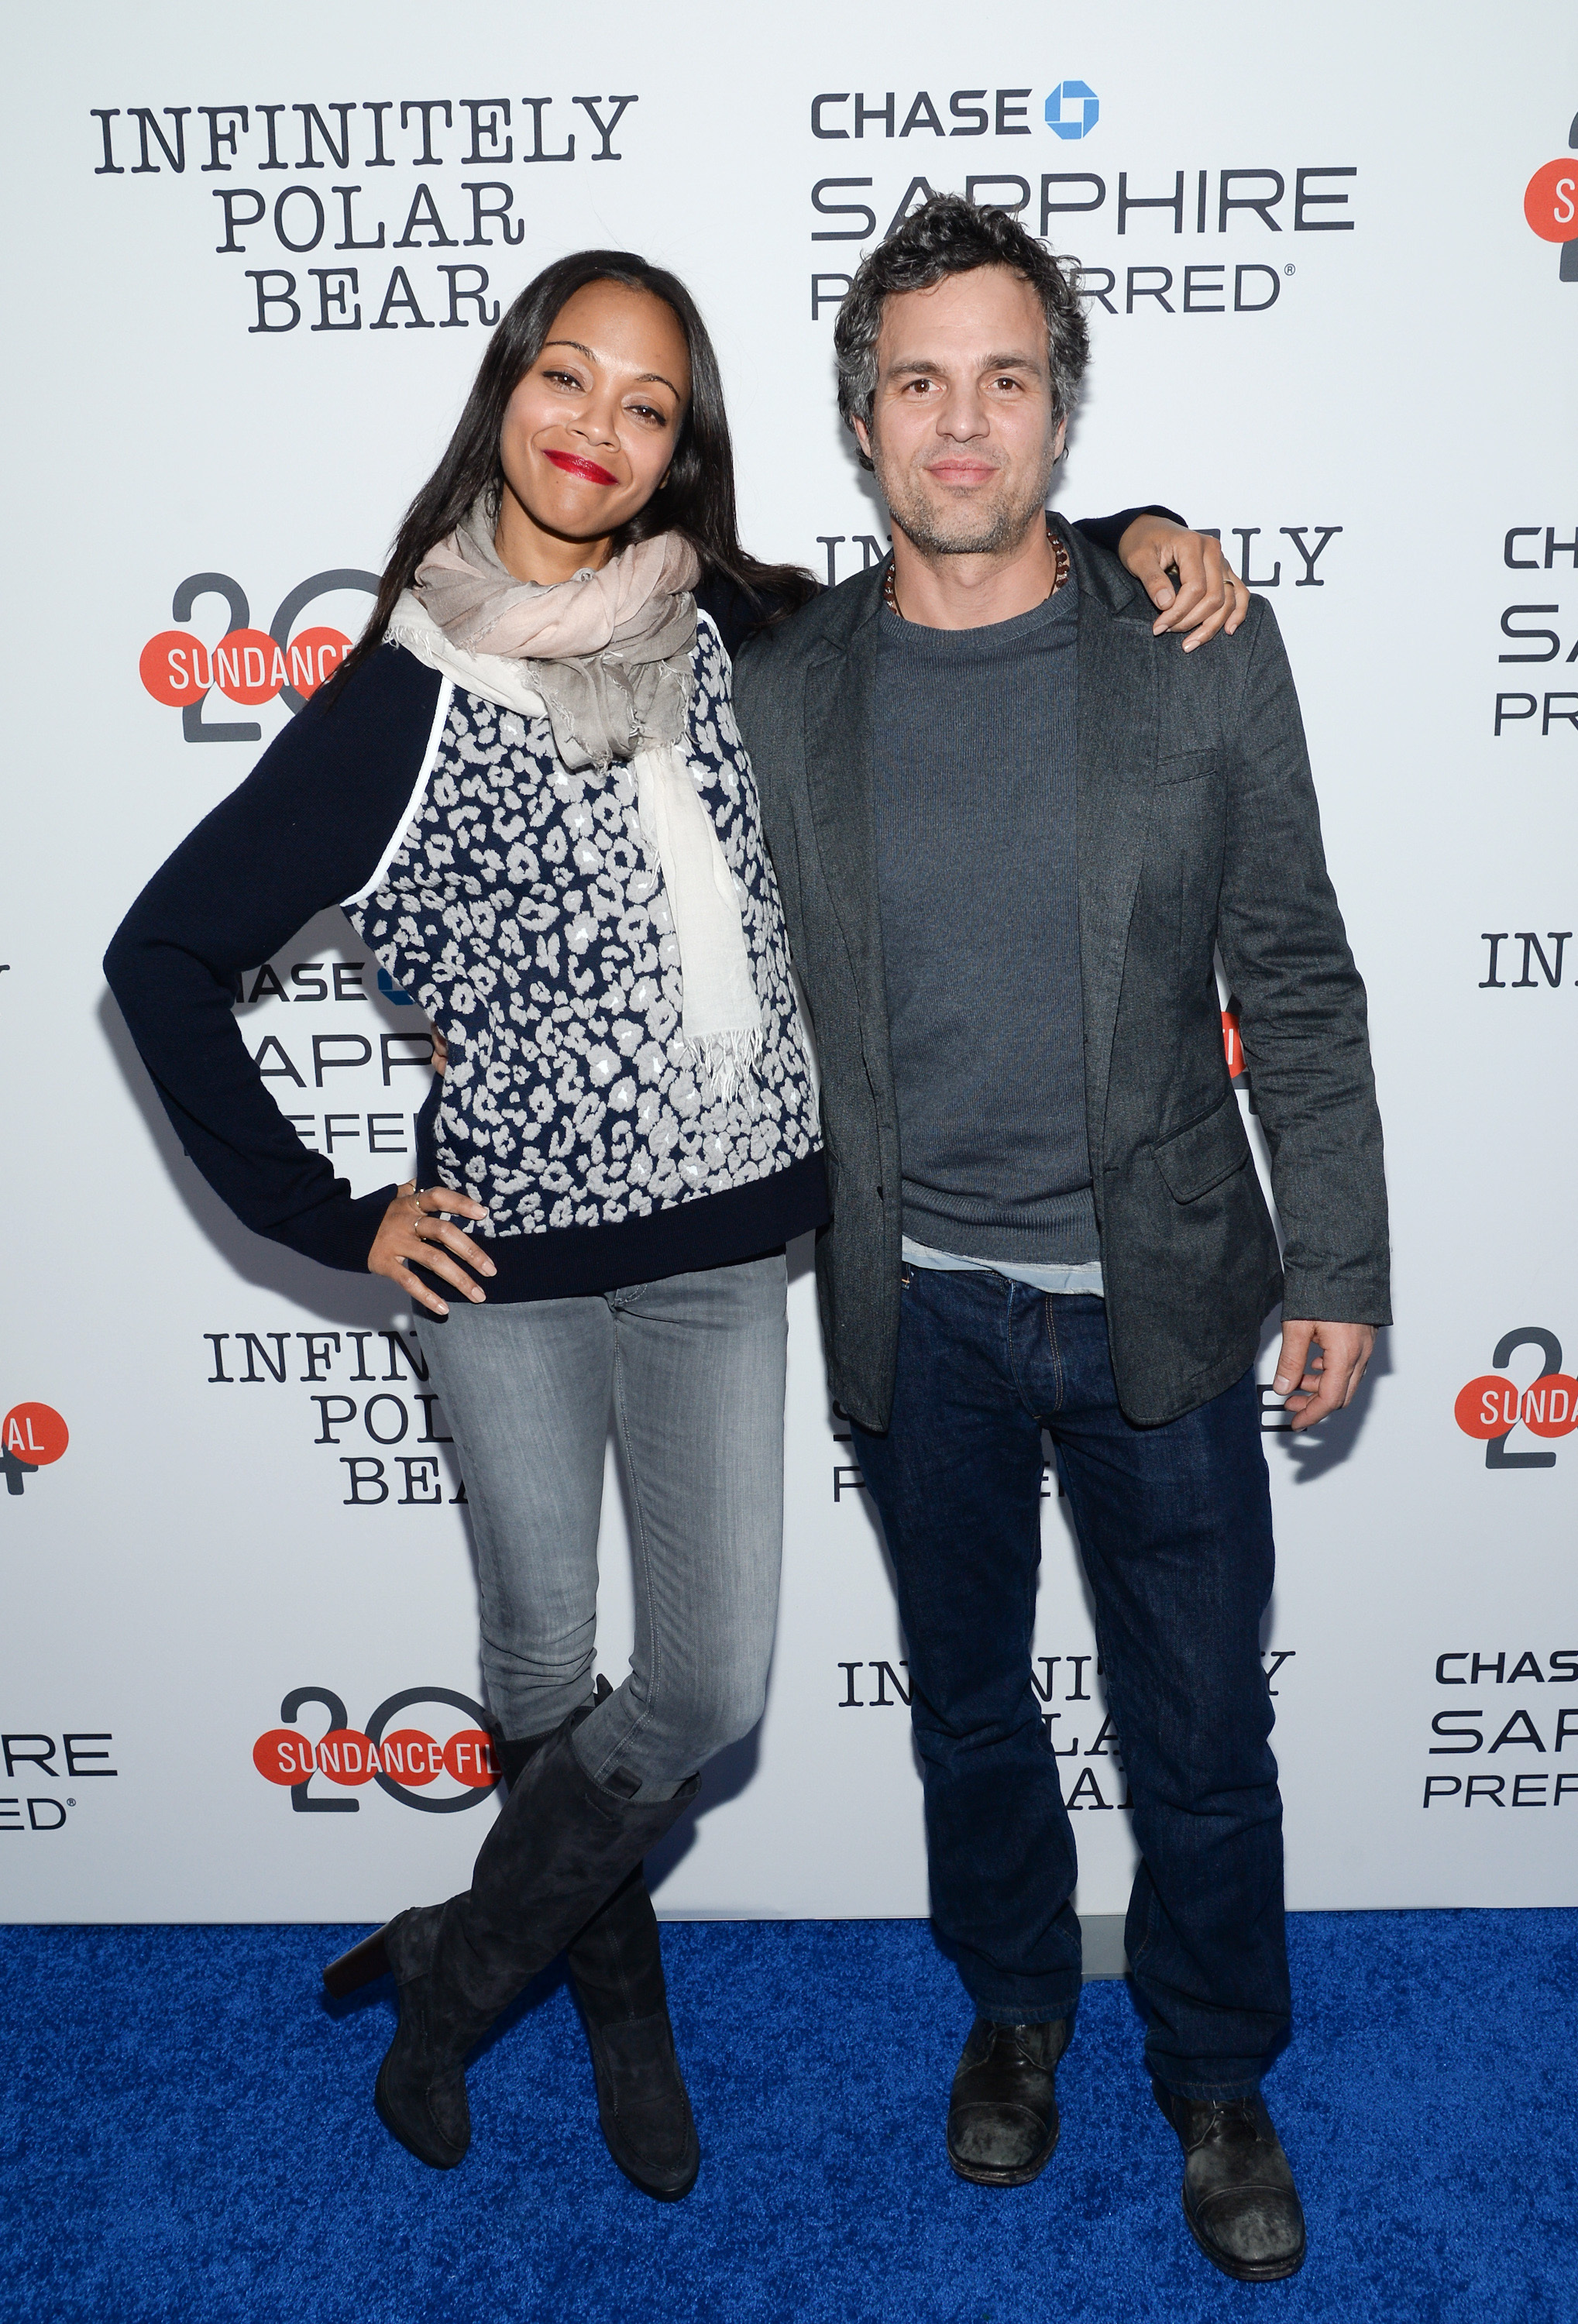 """Actors Zoe Saldana, left, and Mark Ruffalo attend the """"Infinitely Polar Bear"""" premiere party hosted by Chase Sapphire Preferred during the Sundance Film Festival on Saturday, Jan. 18, 2014 in Park City, Utah. (Photo by Evan Agostini/Invision for Chase Sapphire Preferred/AP Images)"""